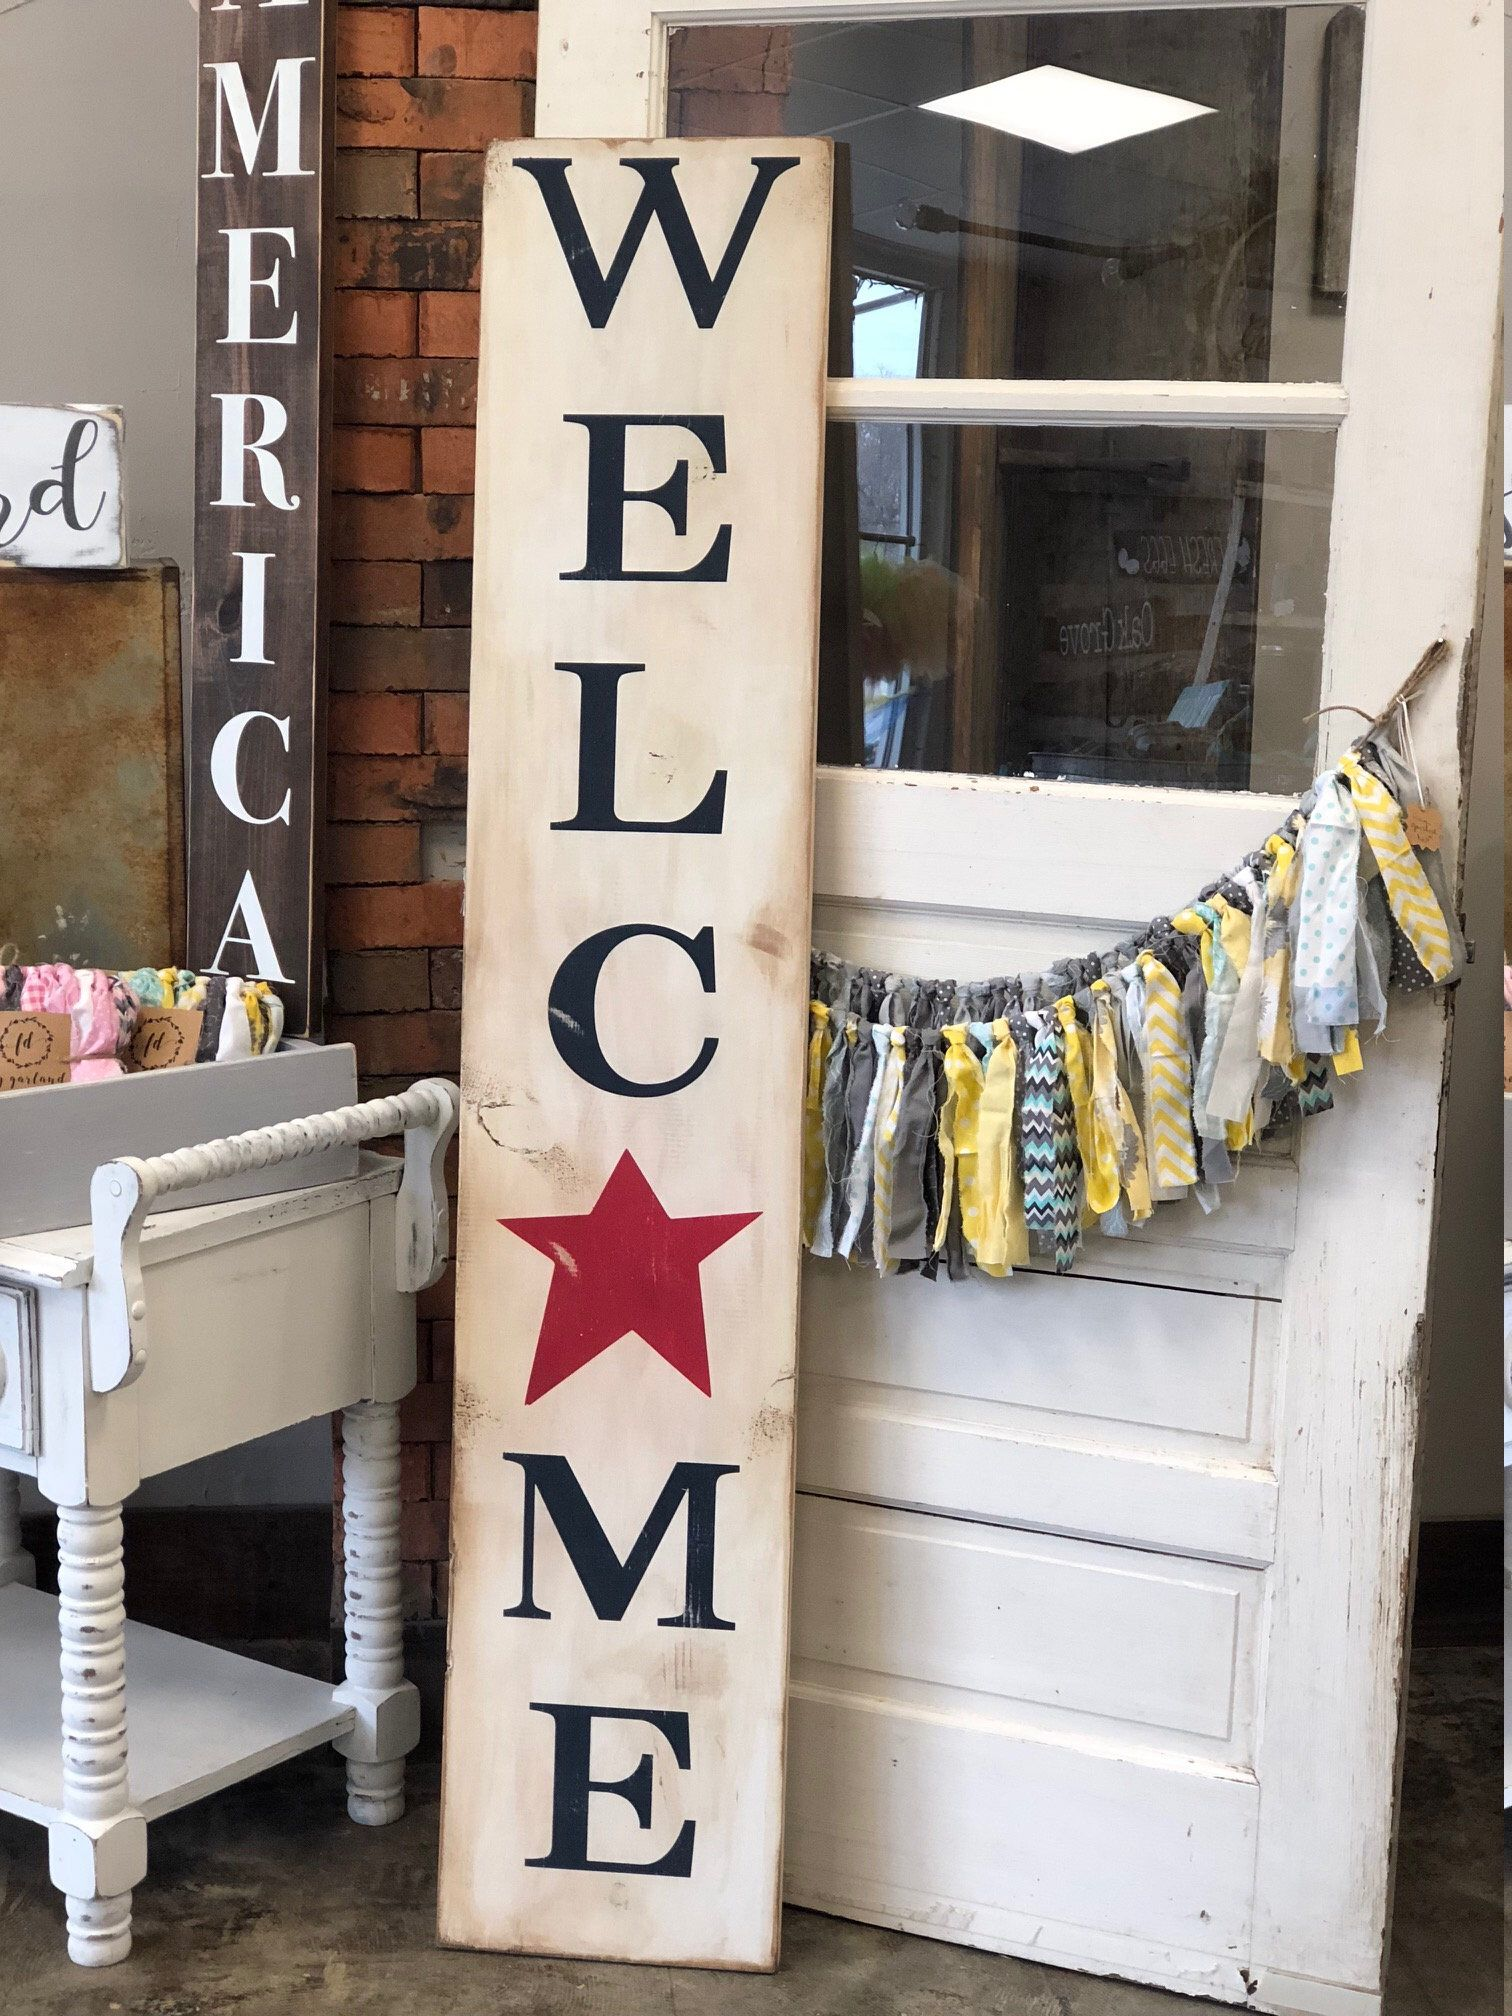 Welcome Sign Tall Porch Rustic Farmhouse Style Country Chic Large Wooden Sign Fourth Of July Labor Day Independence Tall Standing Distressed Porch Welcome Sign Wooden Signs Farmhouse Style Sign